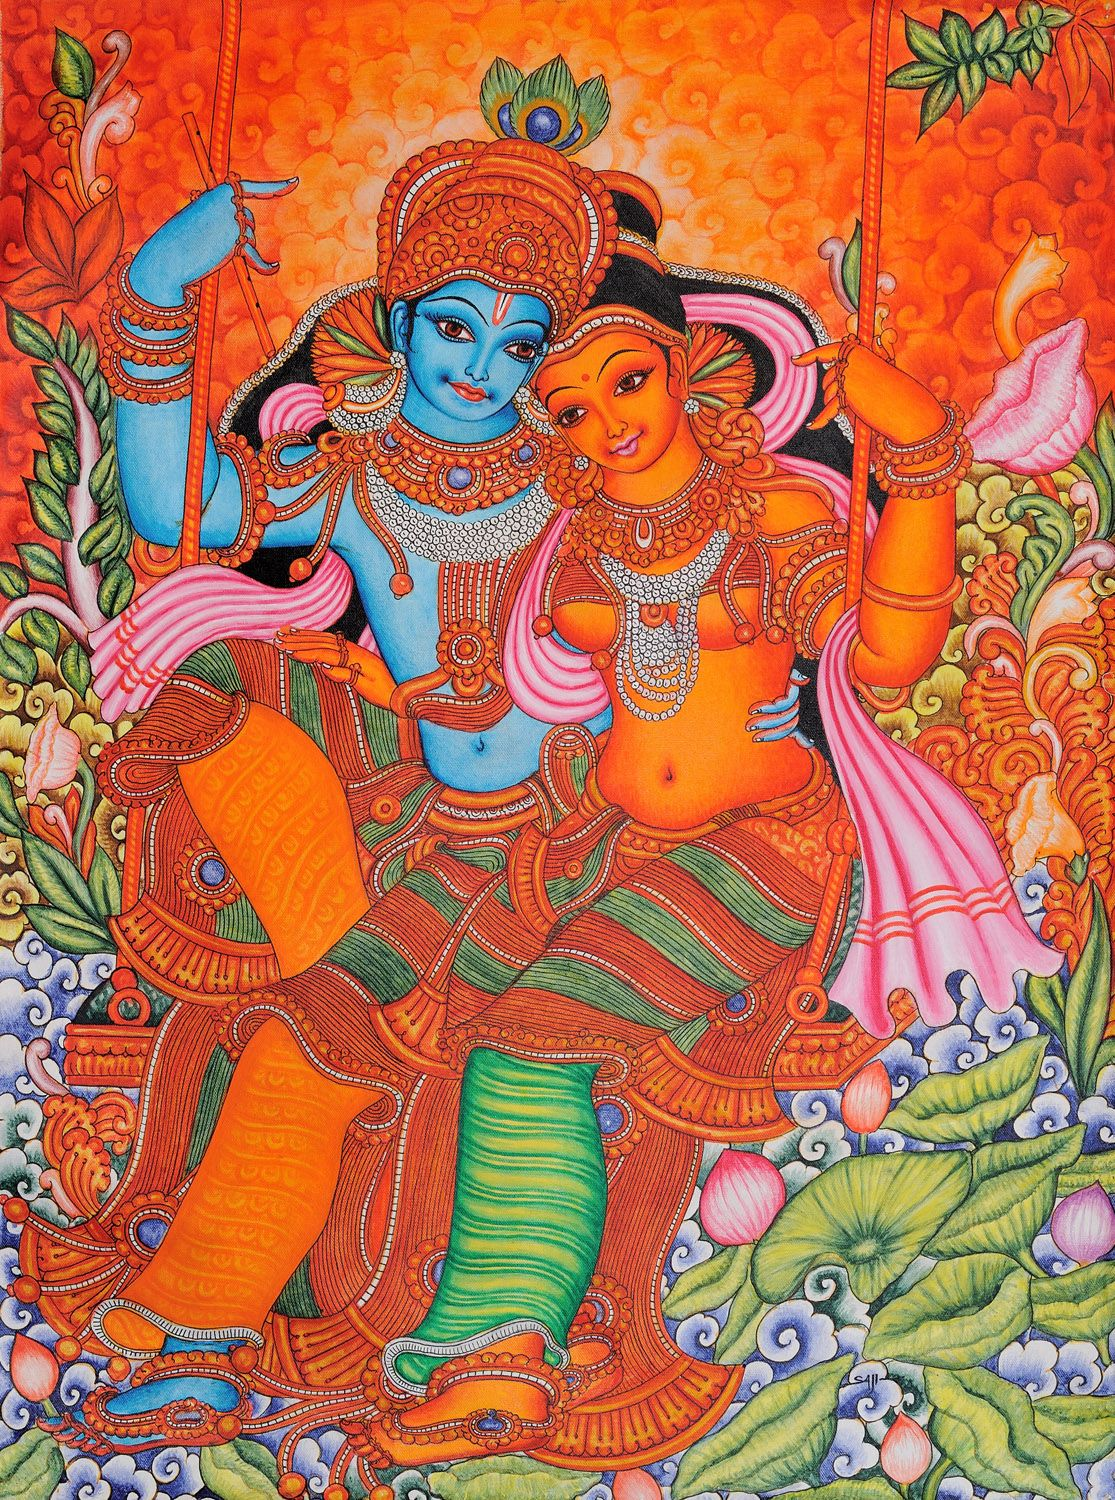 Radha and krishna on swing kerala folk style painting for Mural kerala